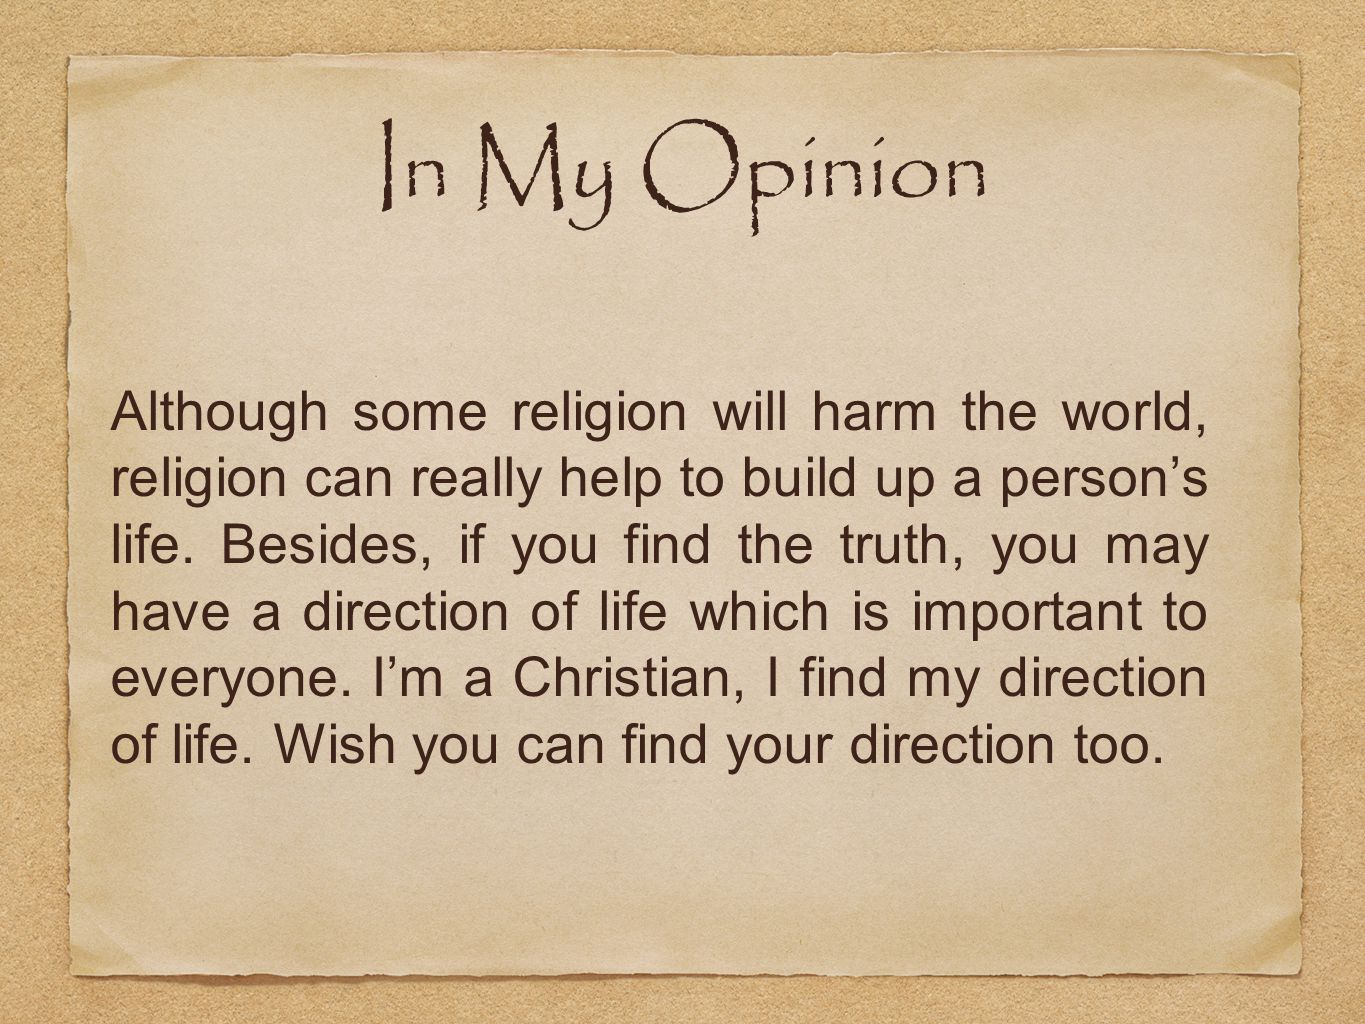 In My Opinion Although some religion will harm the world, religion can really help to build up a person's life.